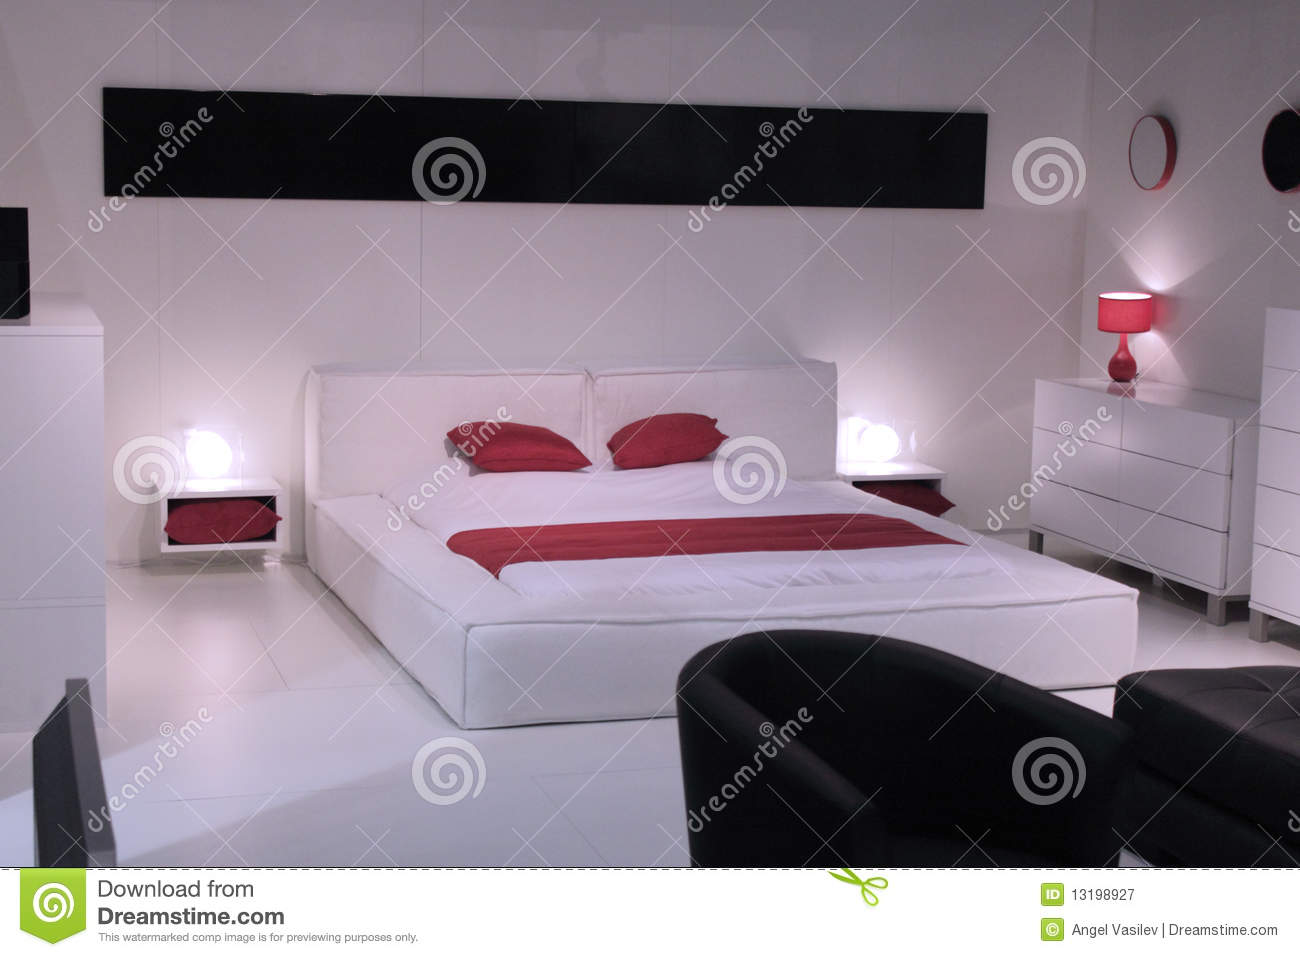 Royalty Free Stock Photo Beautiful Bedroom Design Elegant Furniture Interior